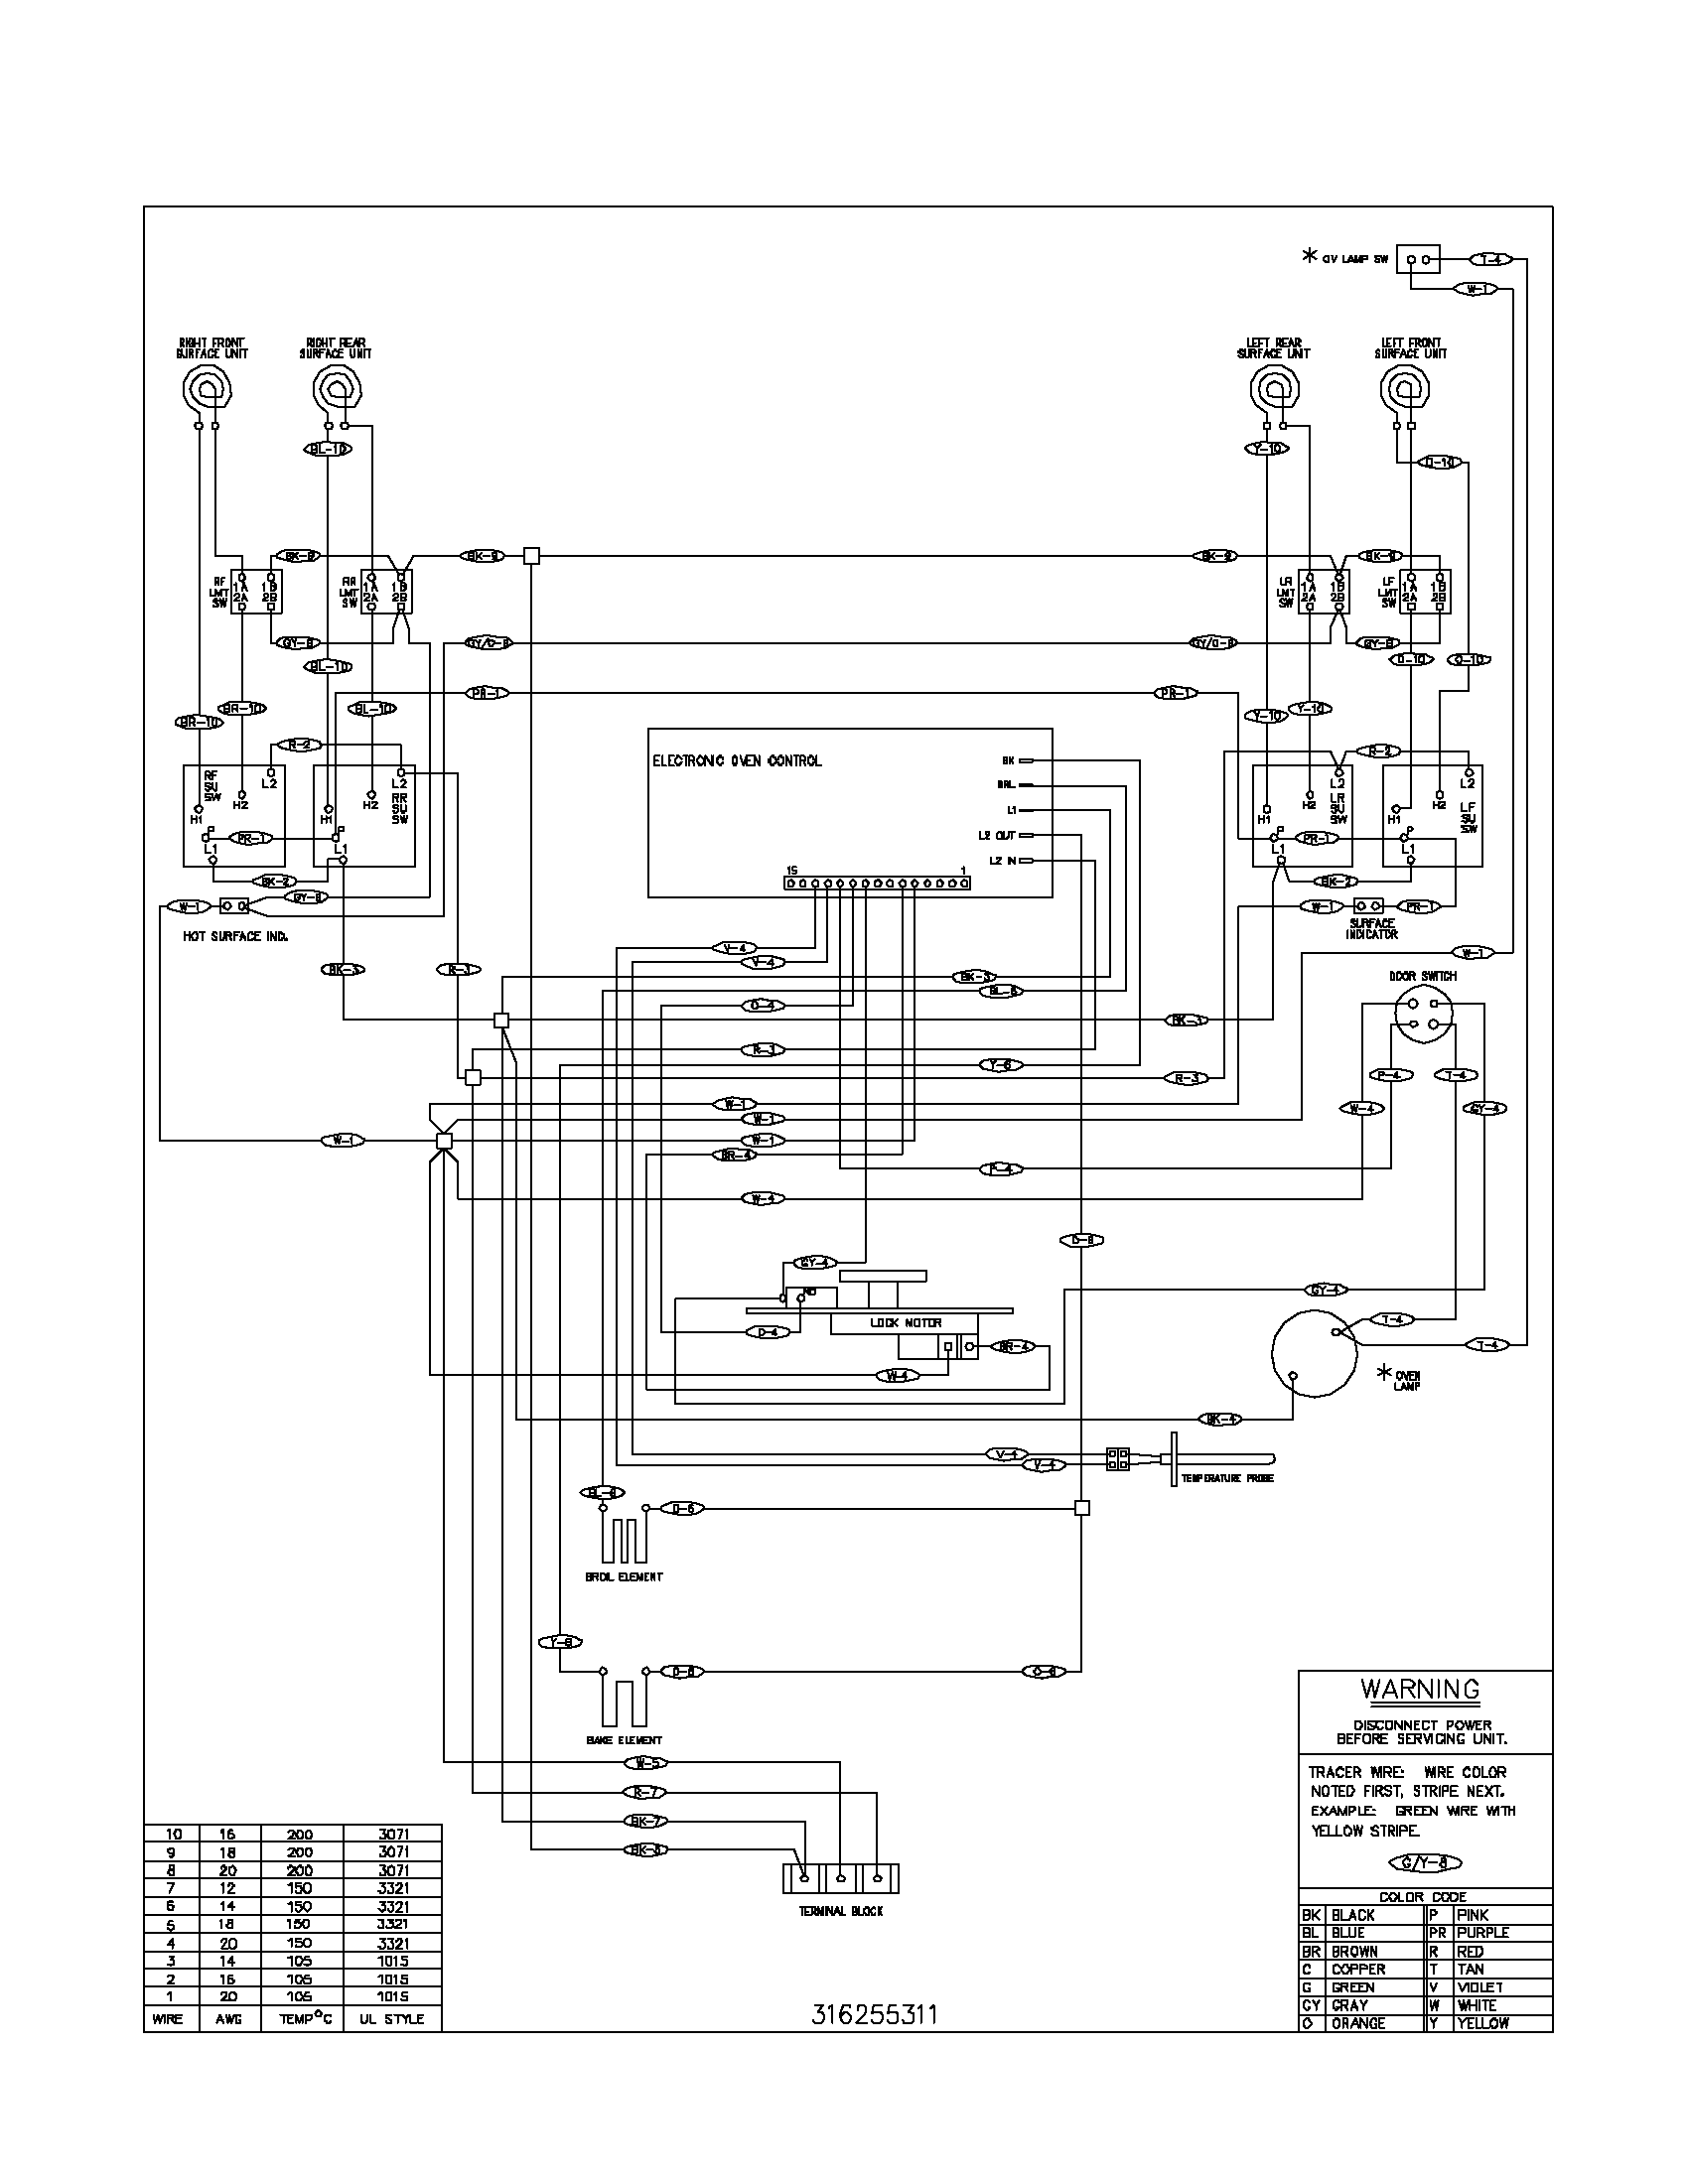 frigidaire fef366ccb electric range timer stove clocks and Viking Range Visc5304b Wiring-Diagram